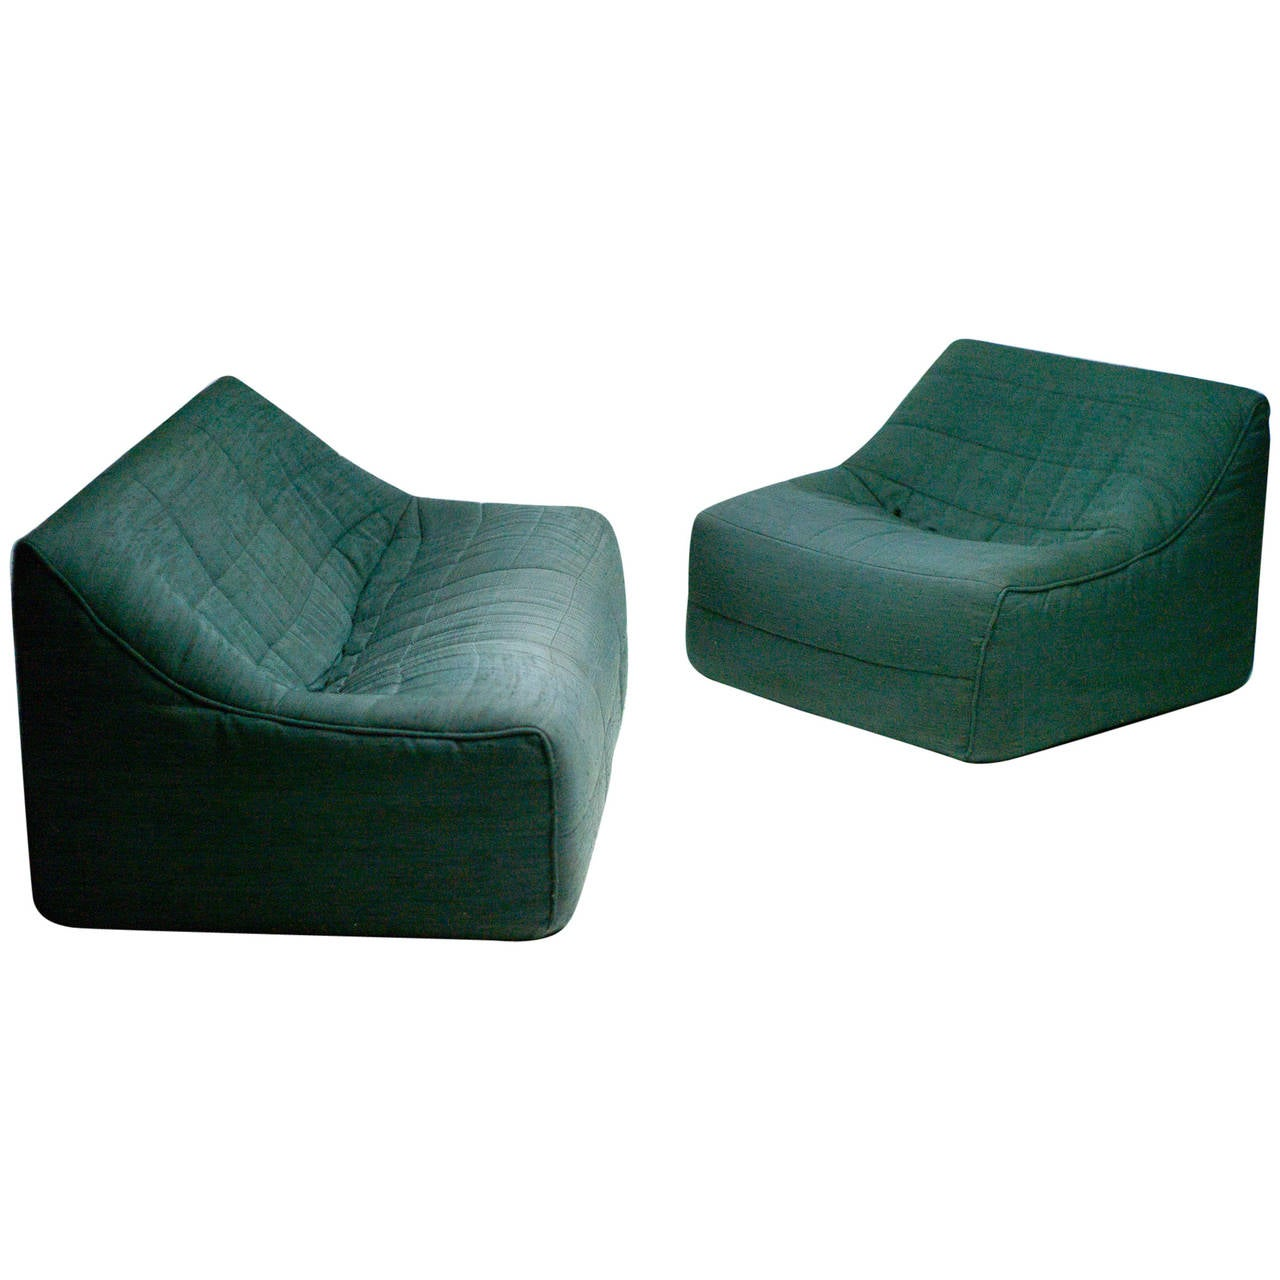 Nice Sofa And Chair By Michel Ducaroy For Ligne Roset 1